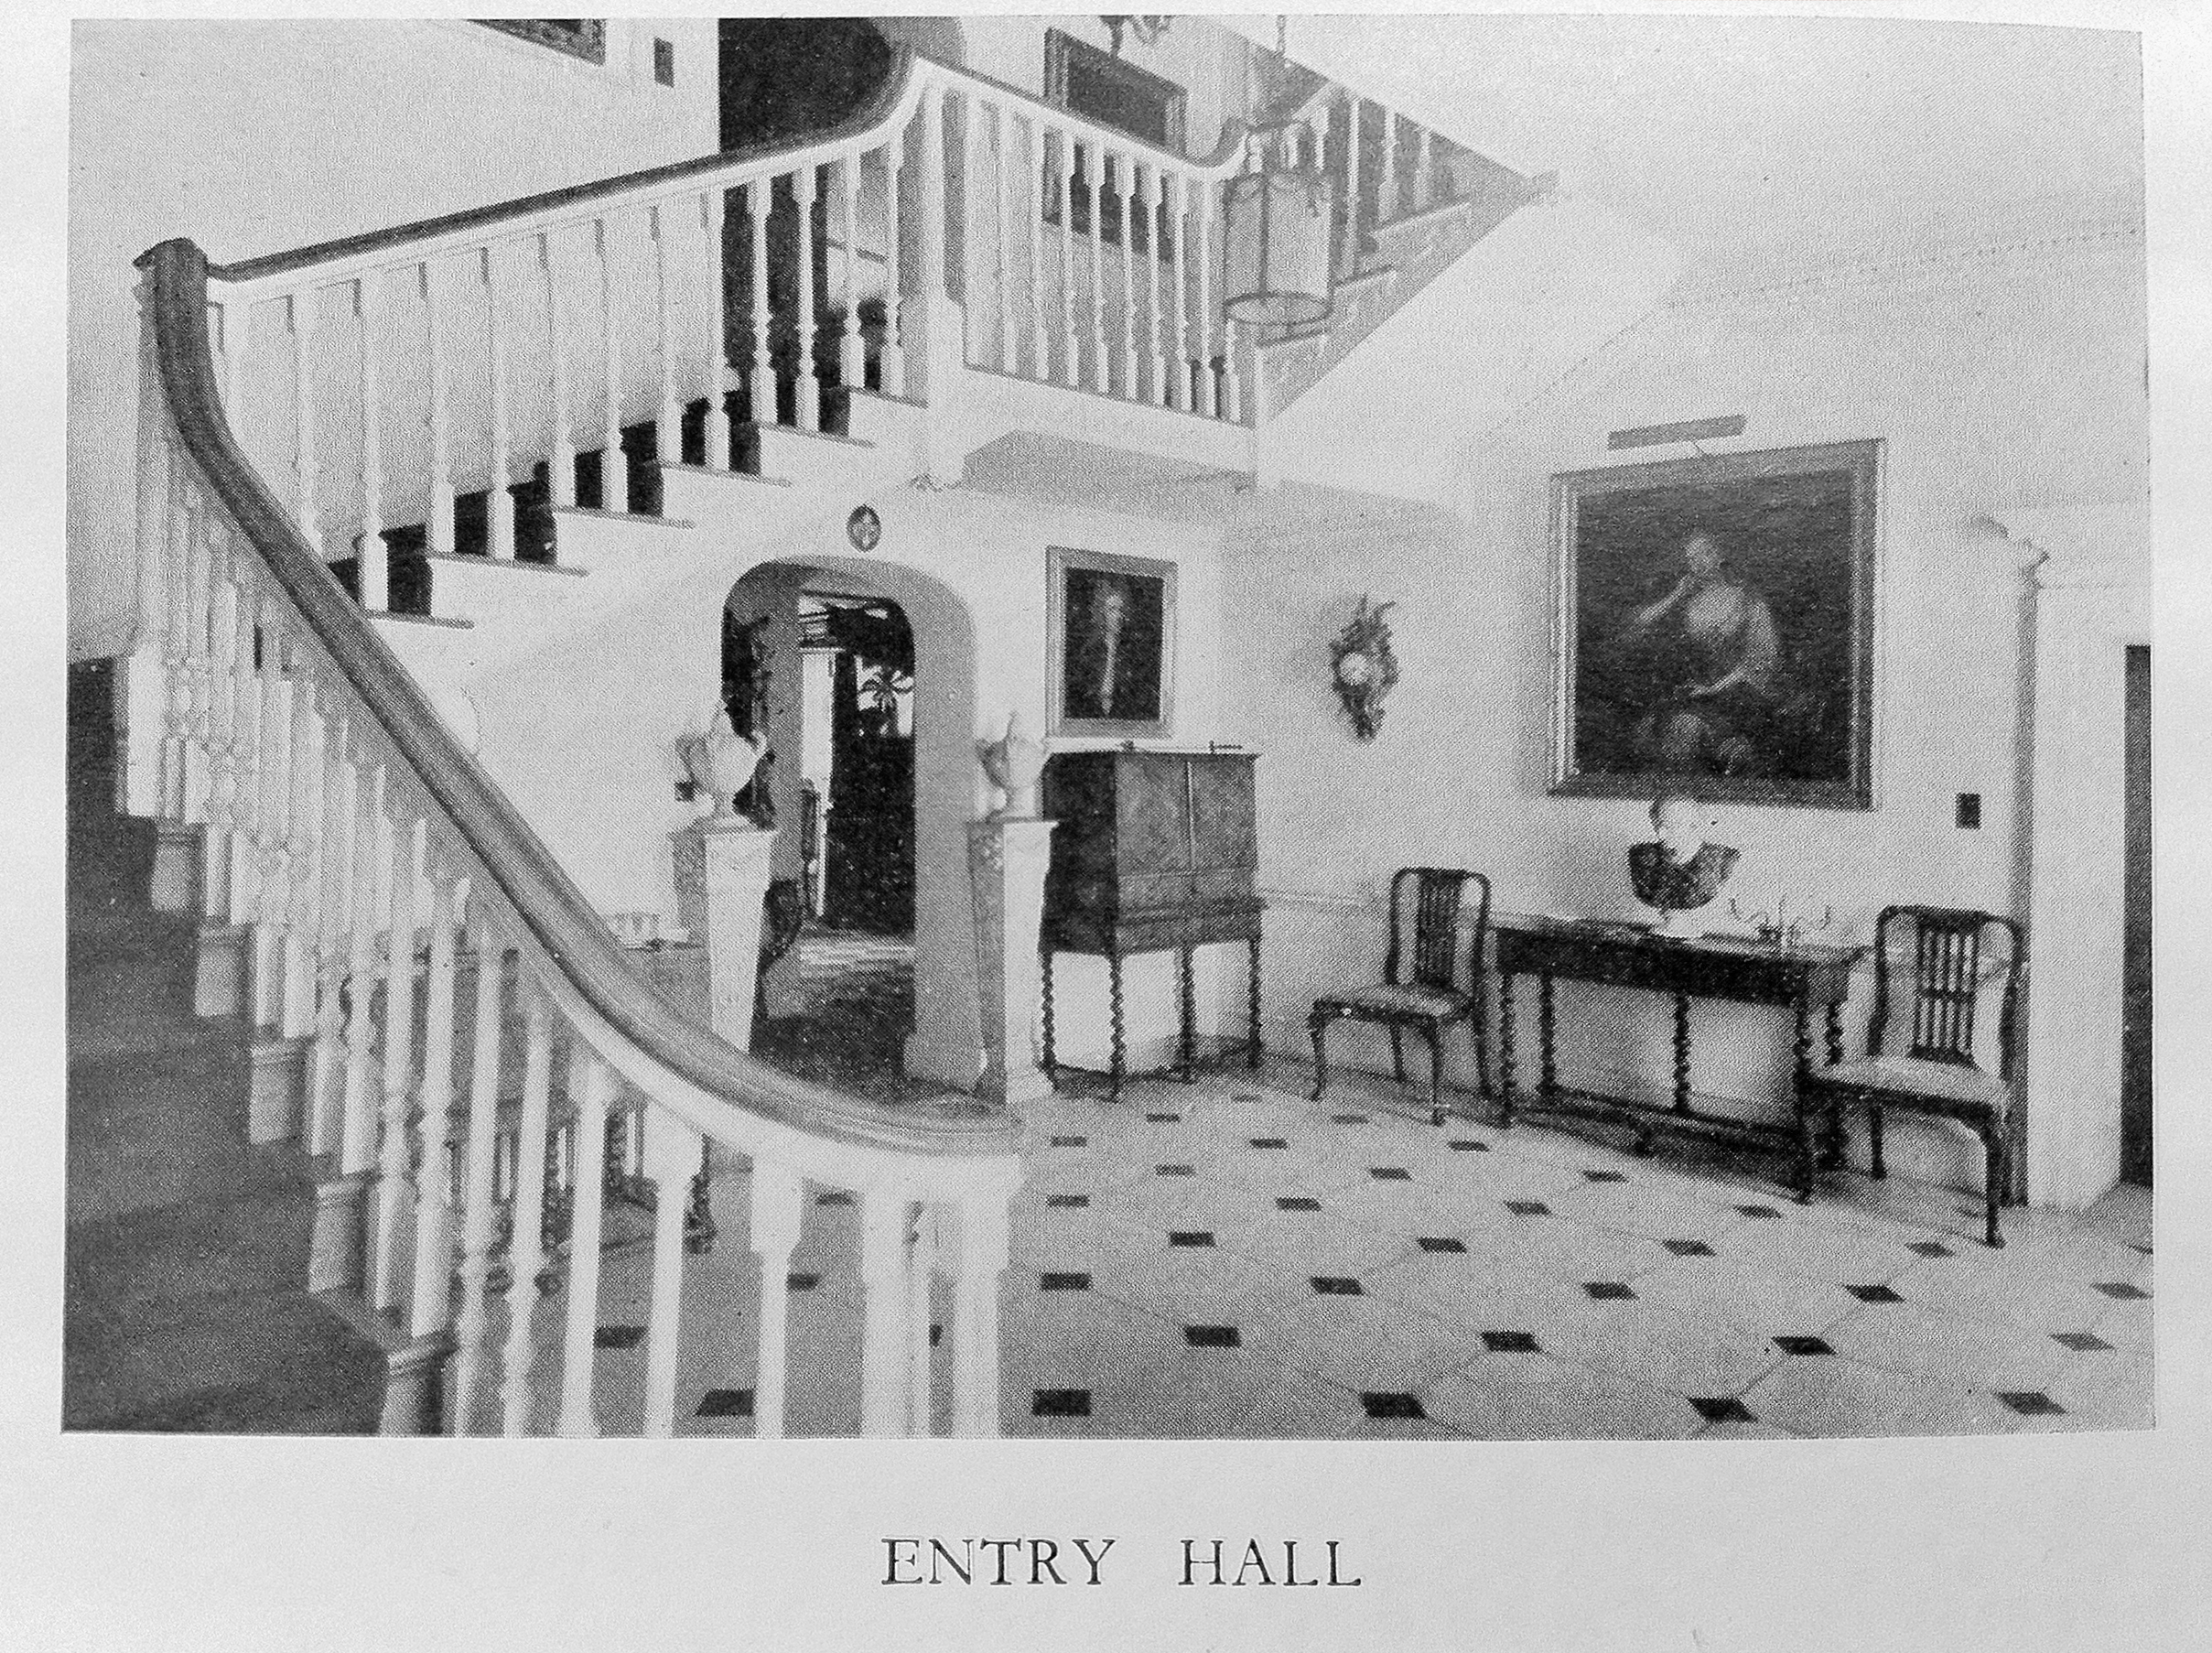 Entry Hall Photo